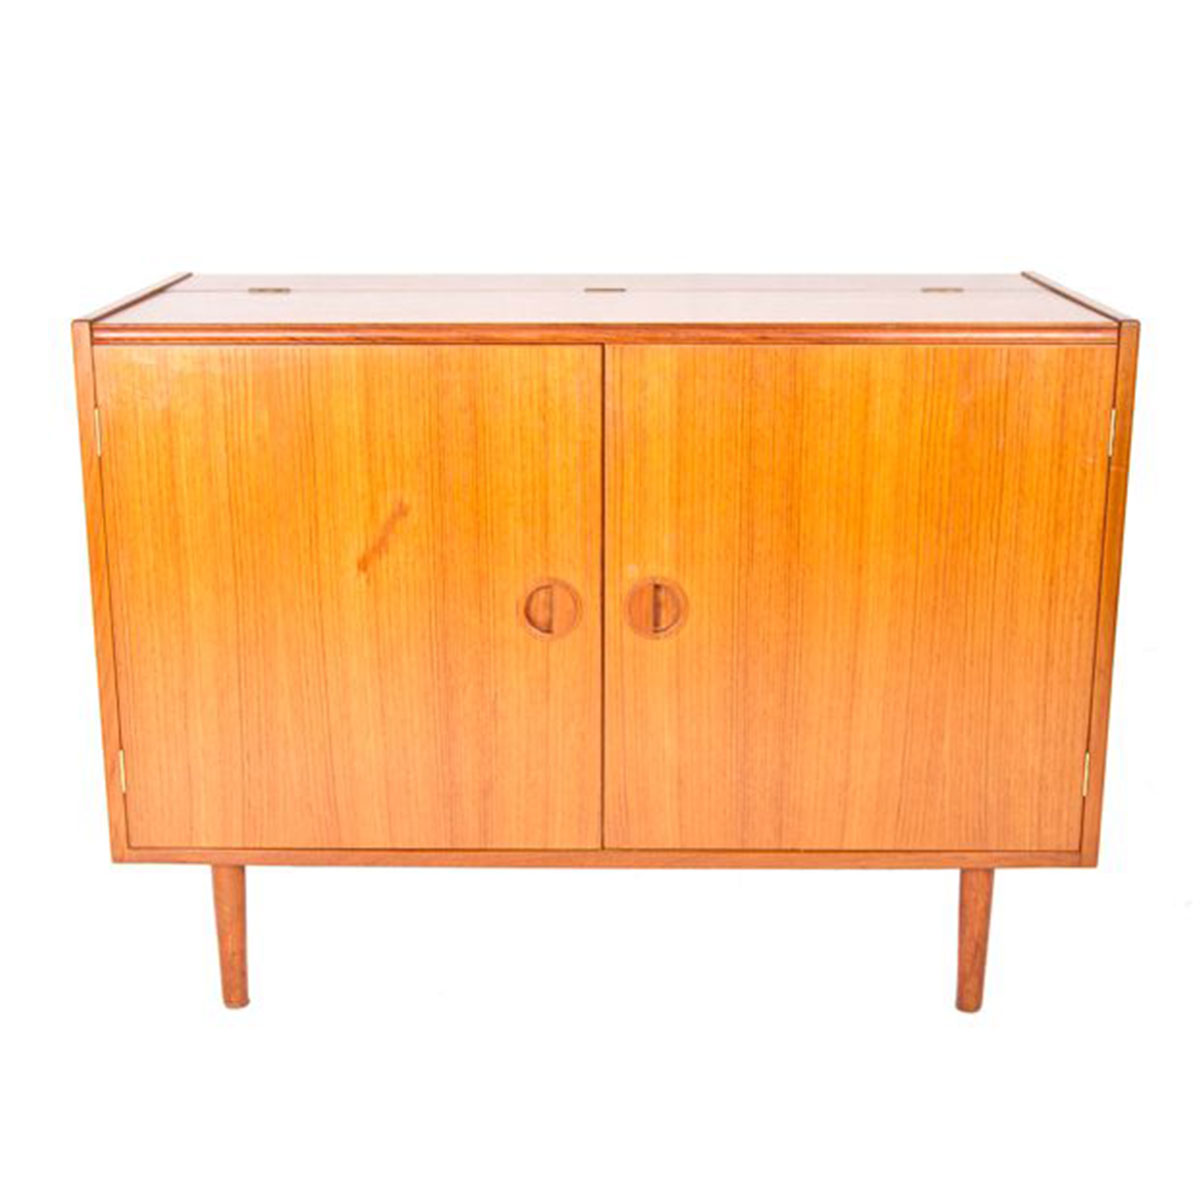 Flip-Up Top 'Mini' Stereo Cabinet / Danish Modern Teak Media Storage